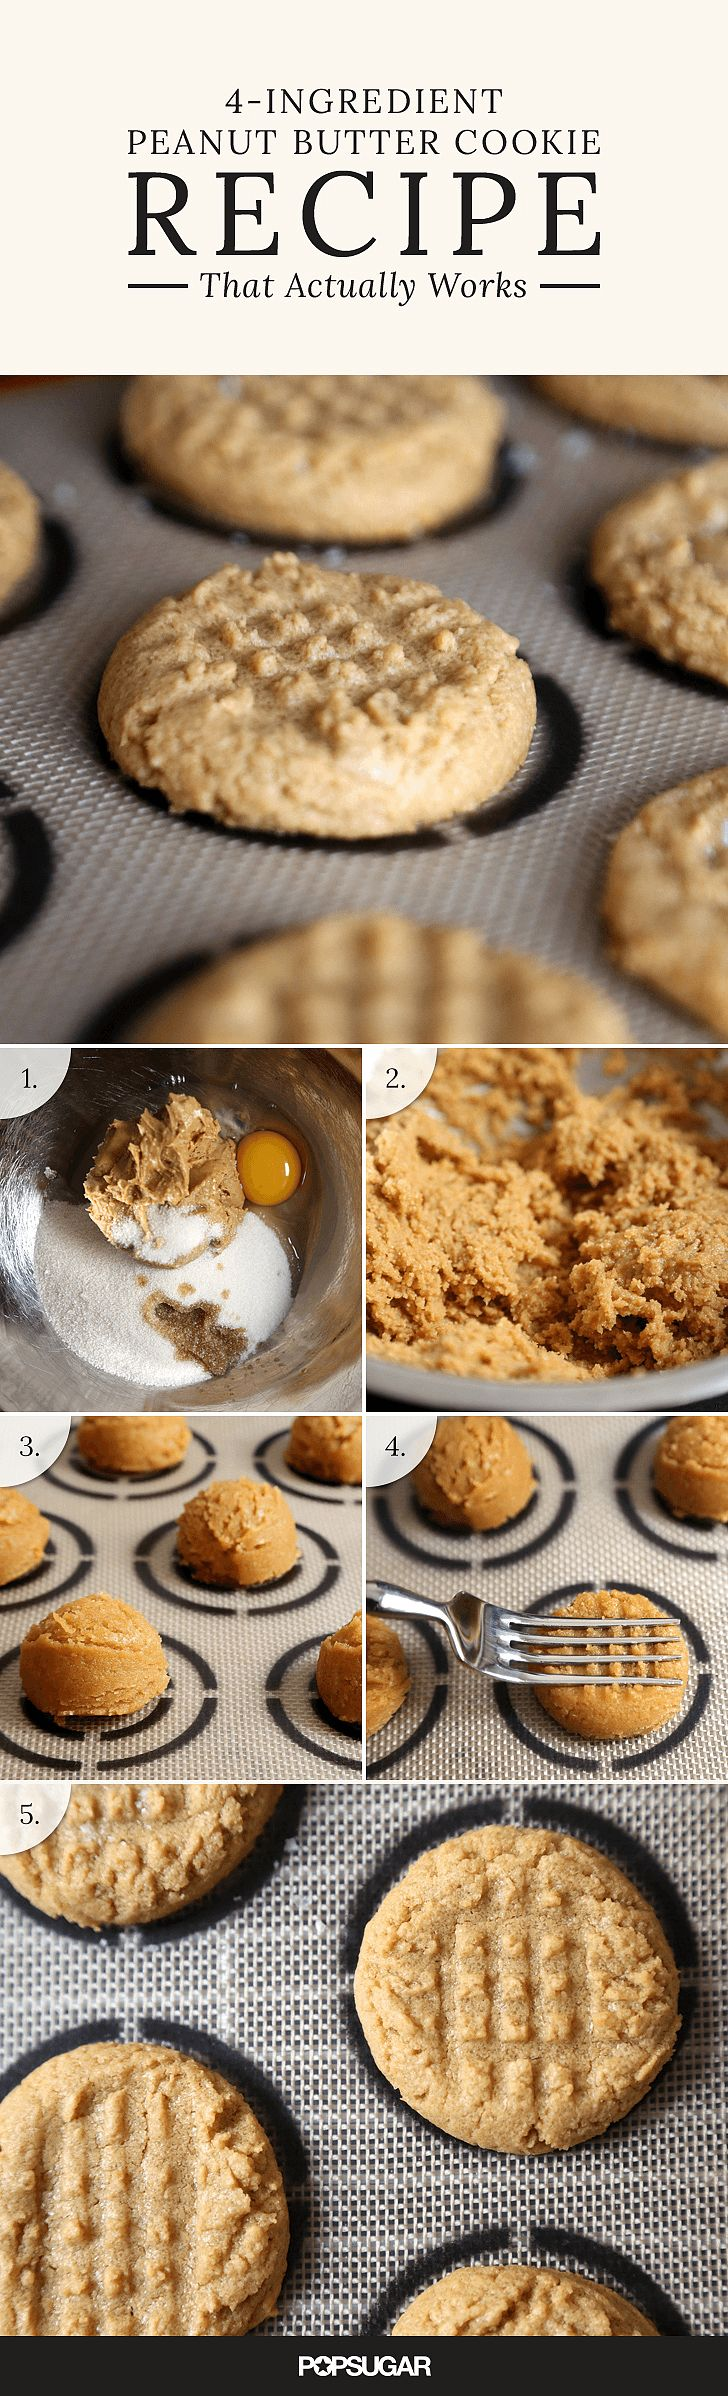 This is THE easiest dessert recipe of all time. There are just four ingredients and they only take a few minutes to prepare before throwing them in the oven!